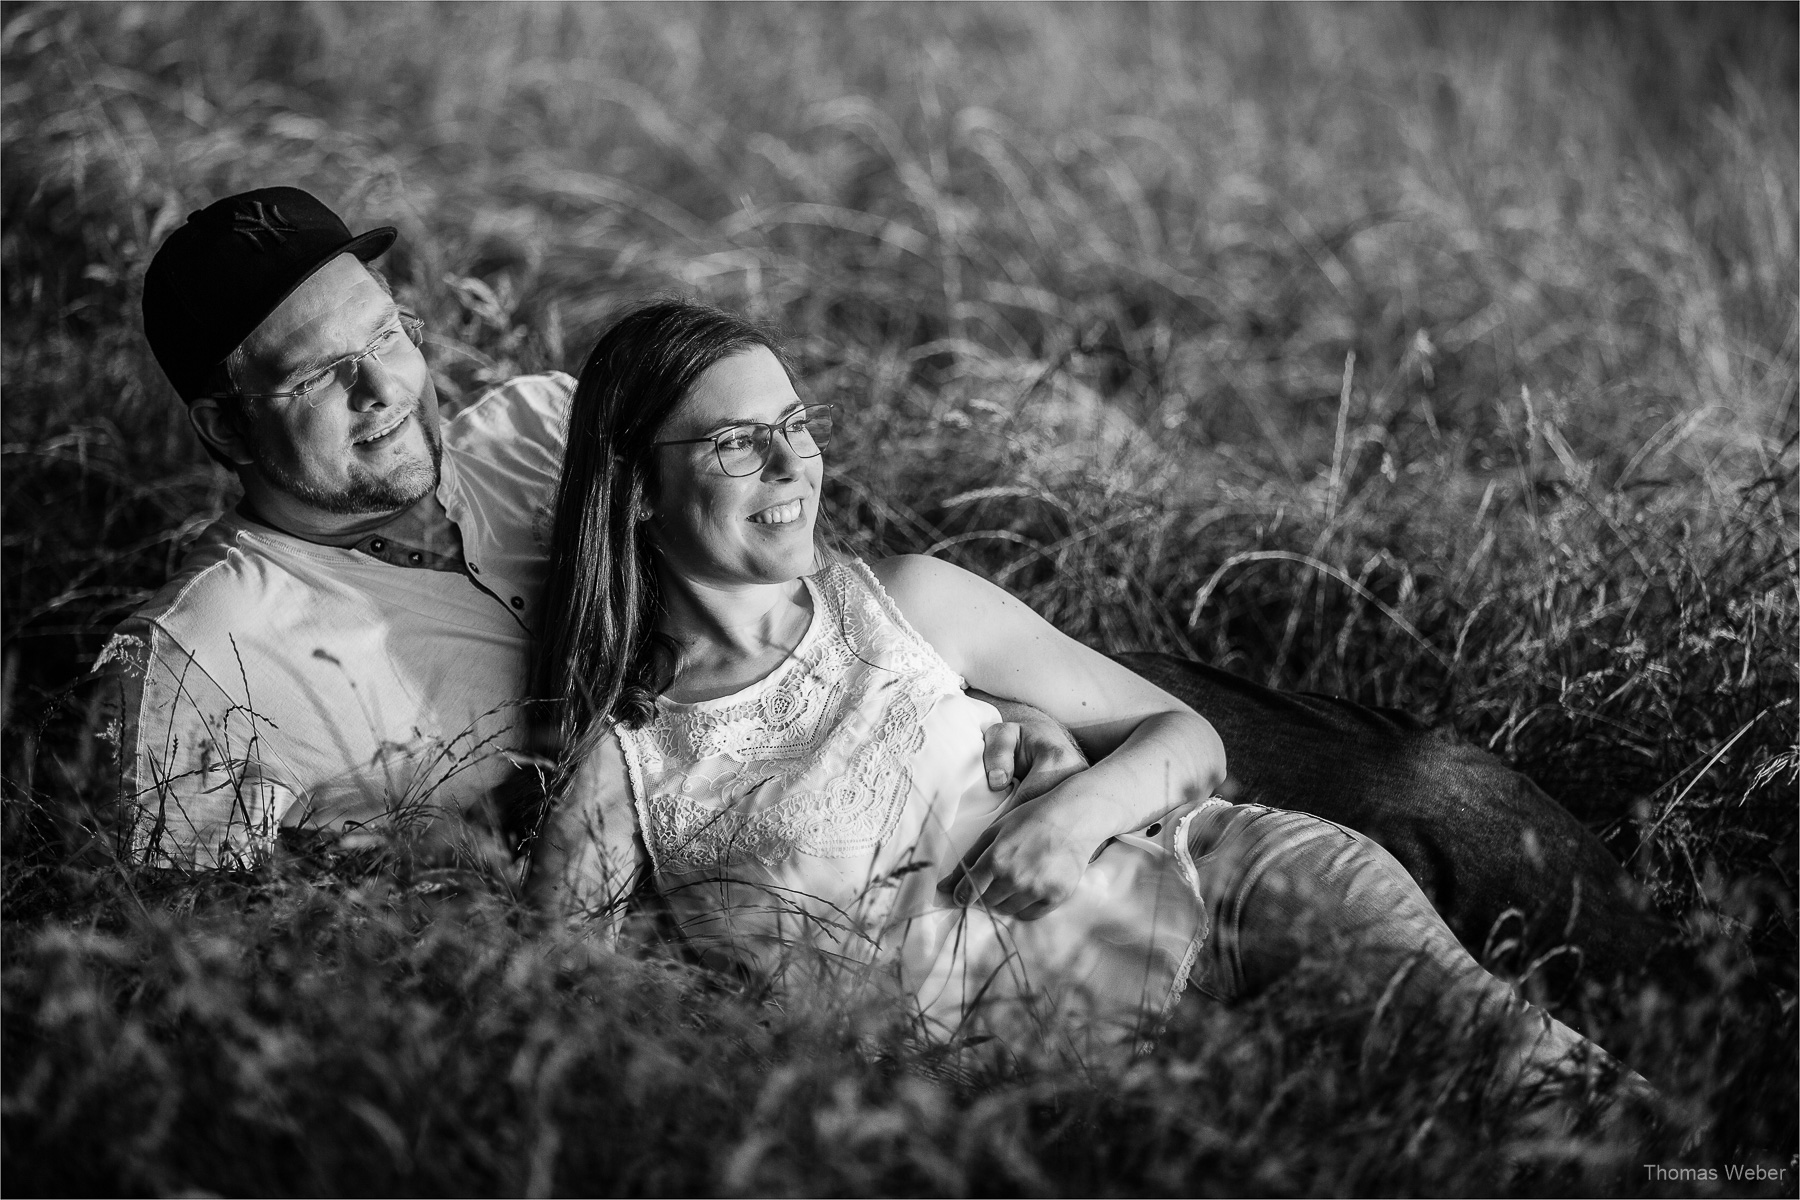 Paarfotos bei einem Engagement-Shooting vom Fotografen Thomas Weber in Oldenburg